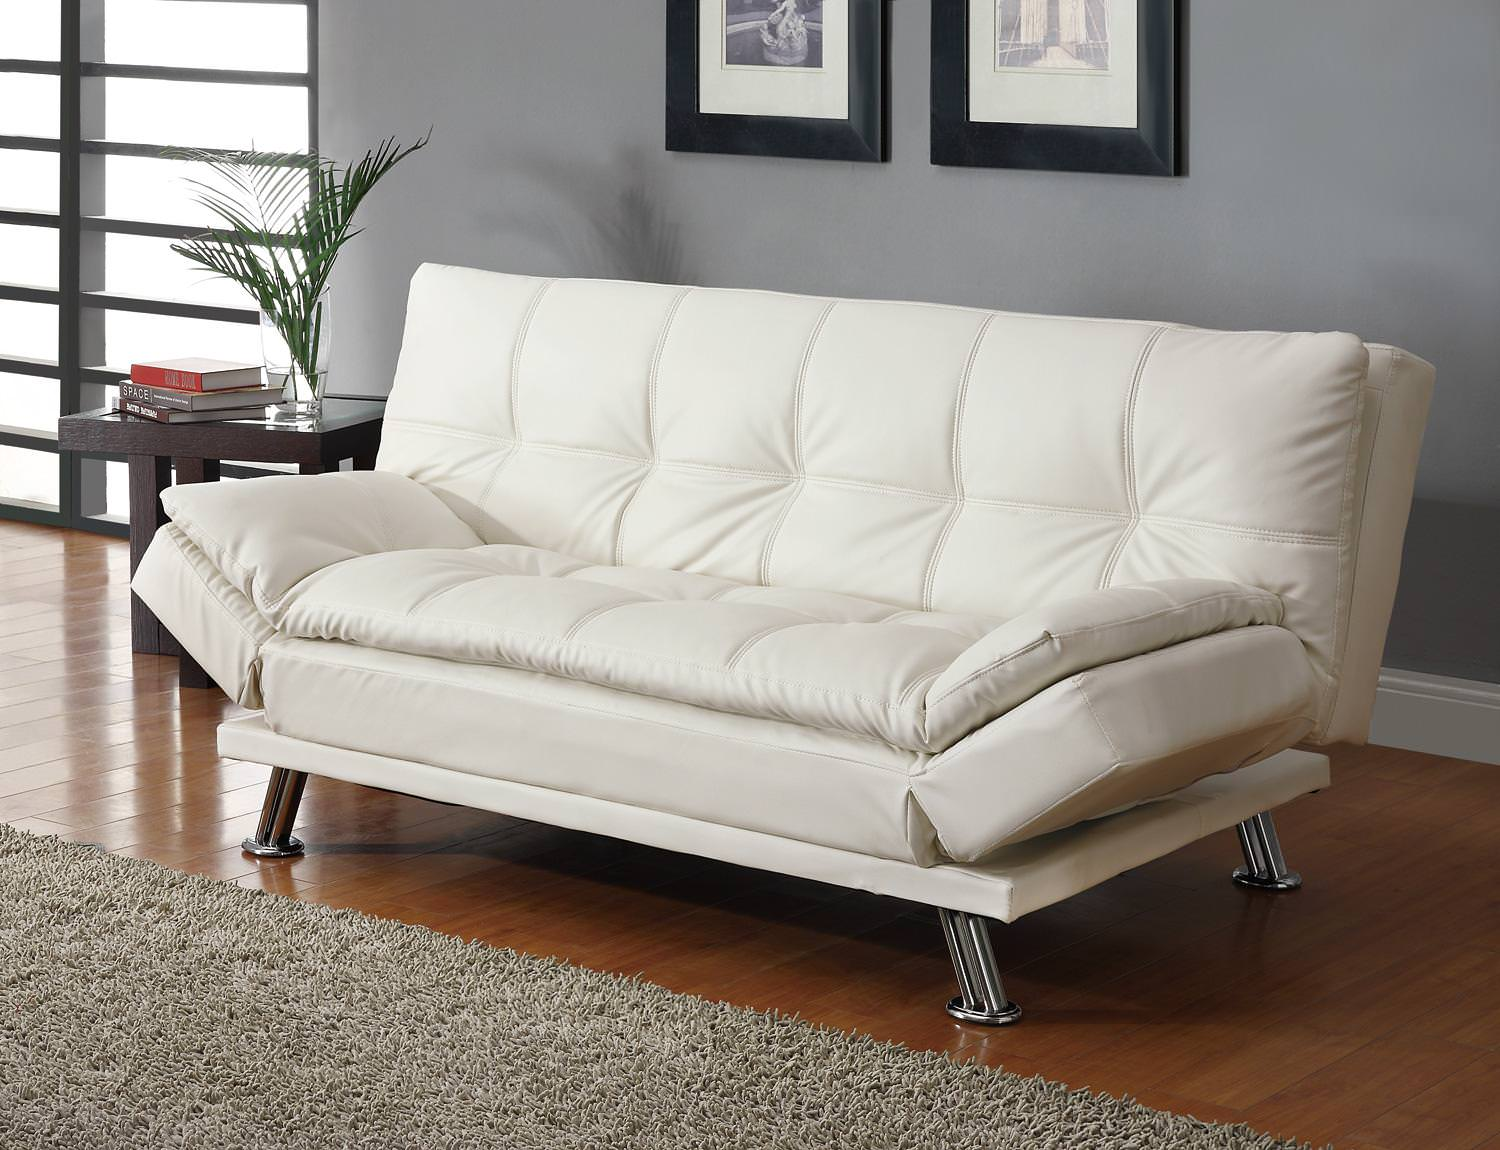 Pleasing 300291 Sofa Bed White By Coaster Squirreltailoven Fun Painted Chair Ideas Images Squirreltailovenorg